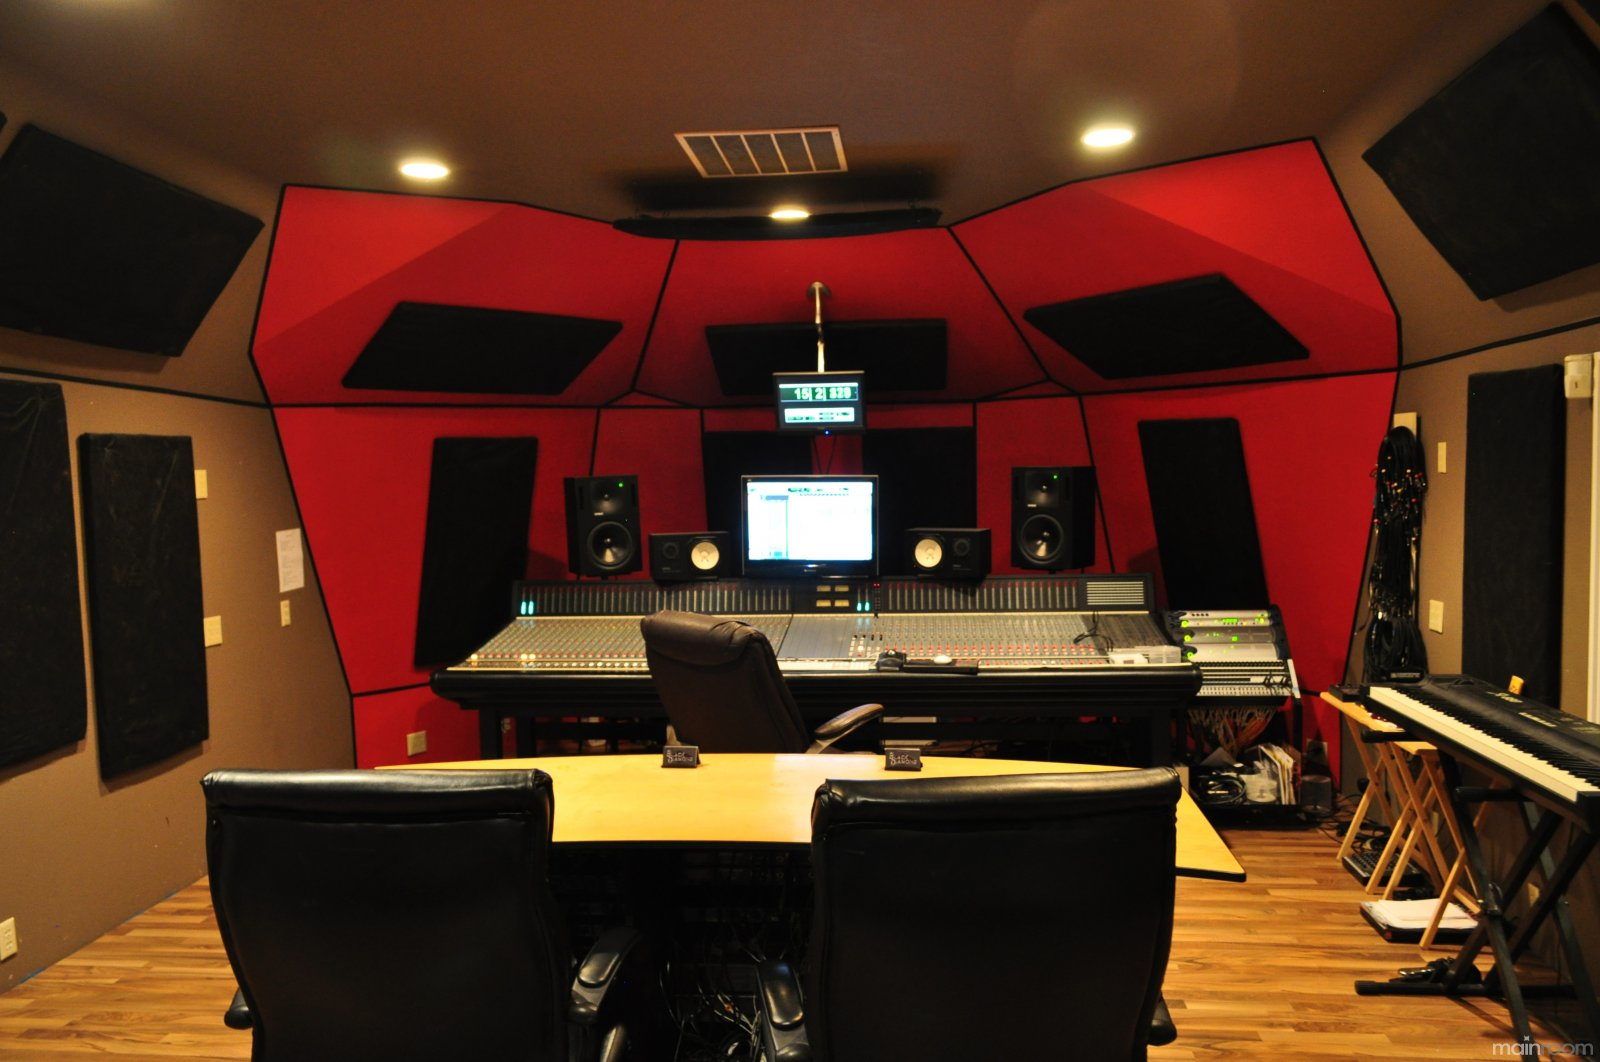 Professional Recording Studio | Joy Studio Design Gallery - Best ...: www.joystudiodesign.com/professional/professional-recording-studio...